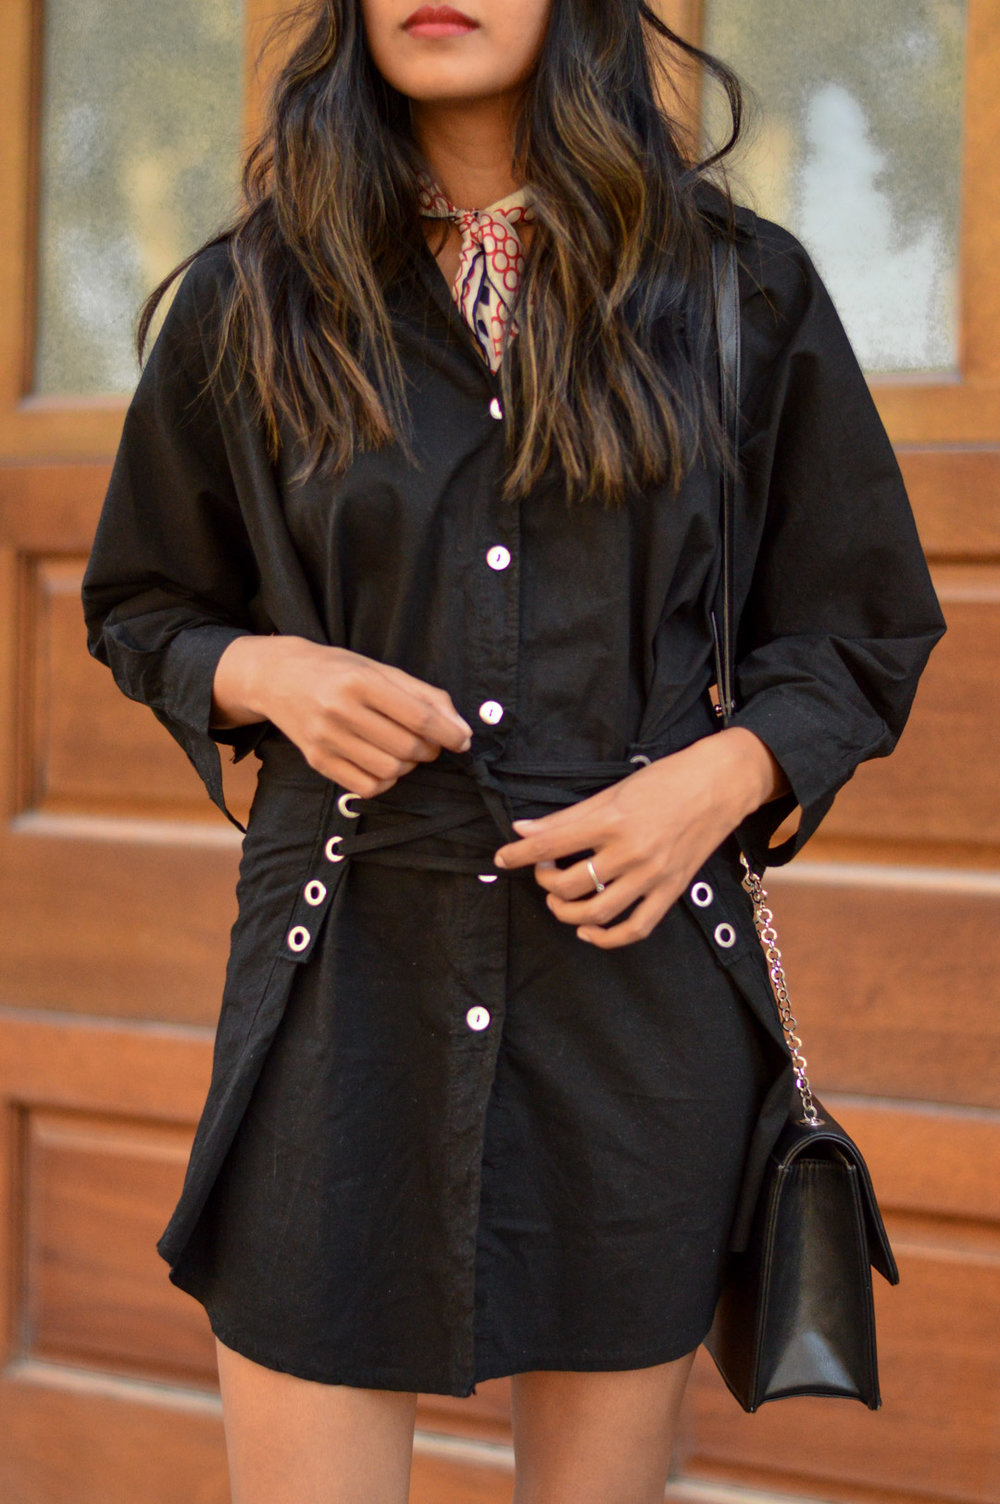 corset-shirtdress-silk-scarf-fall-style-blogger-outfit 4